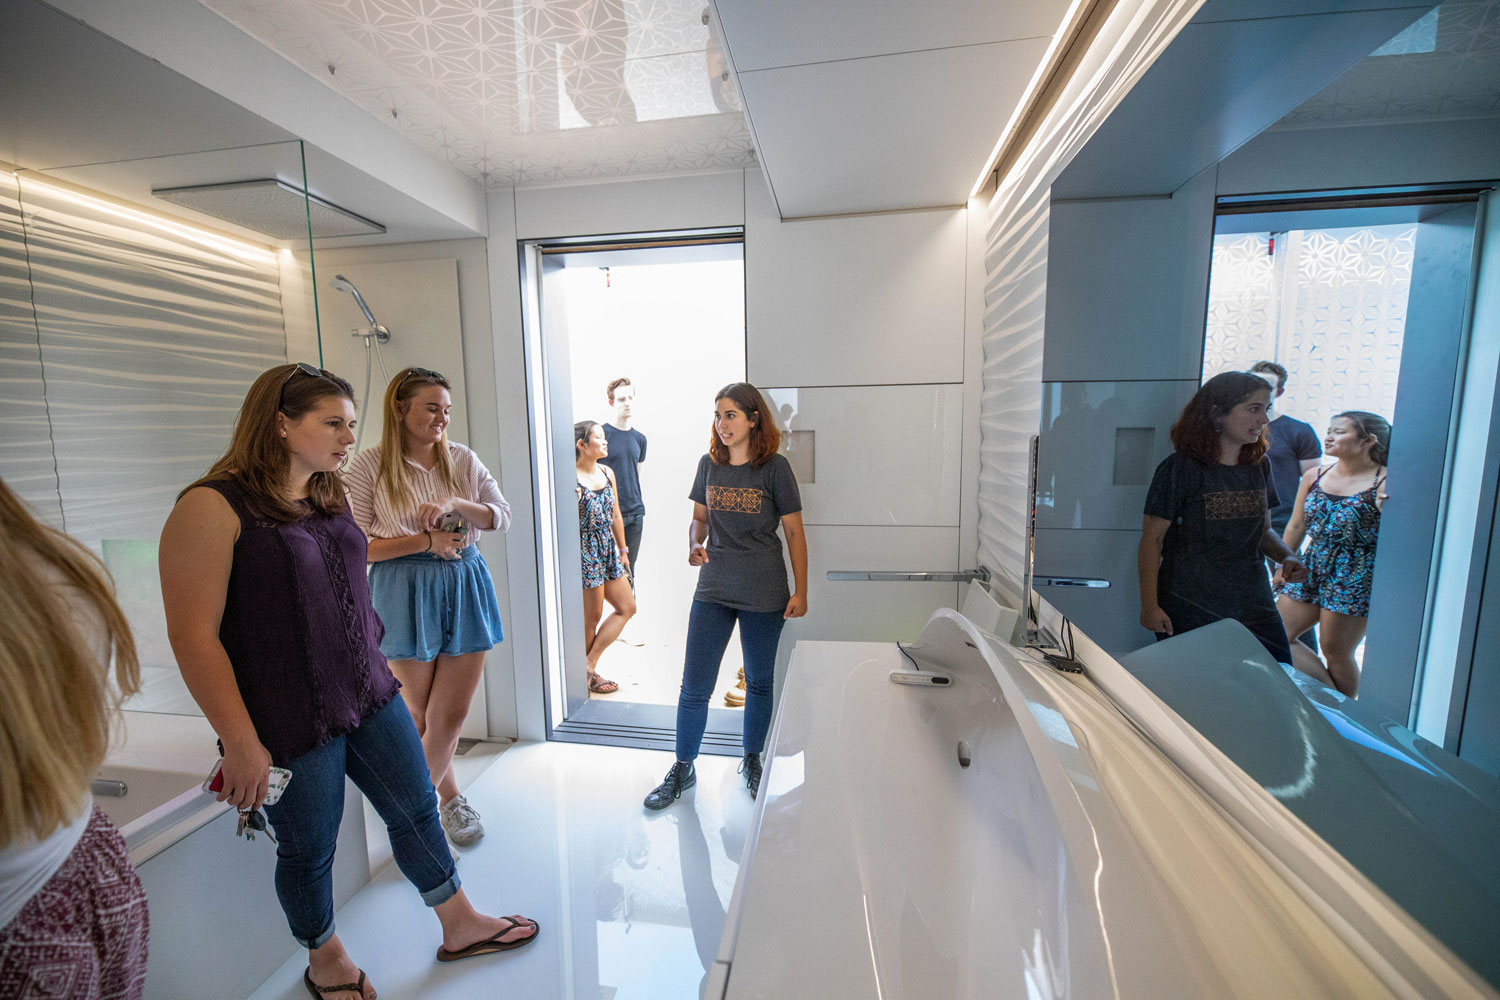 Three women stand inside a futuristic-looking bathroom, complete with a 3D printed sink.